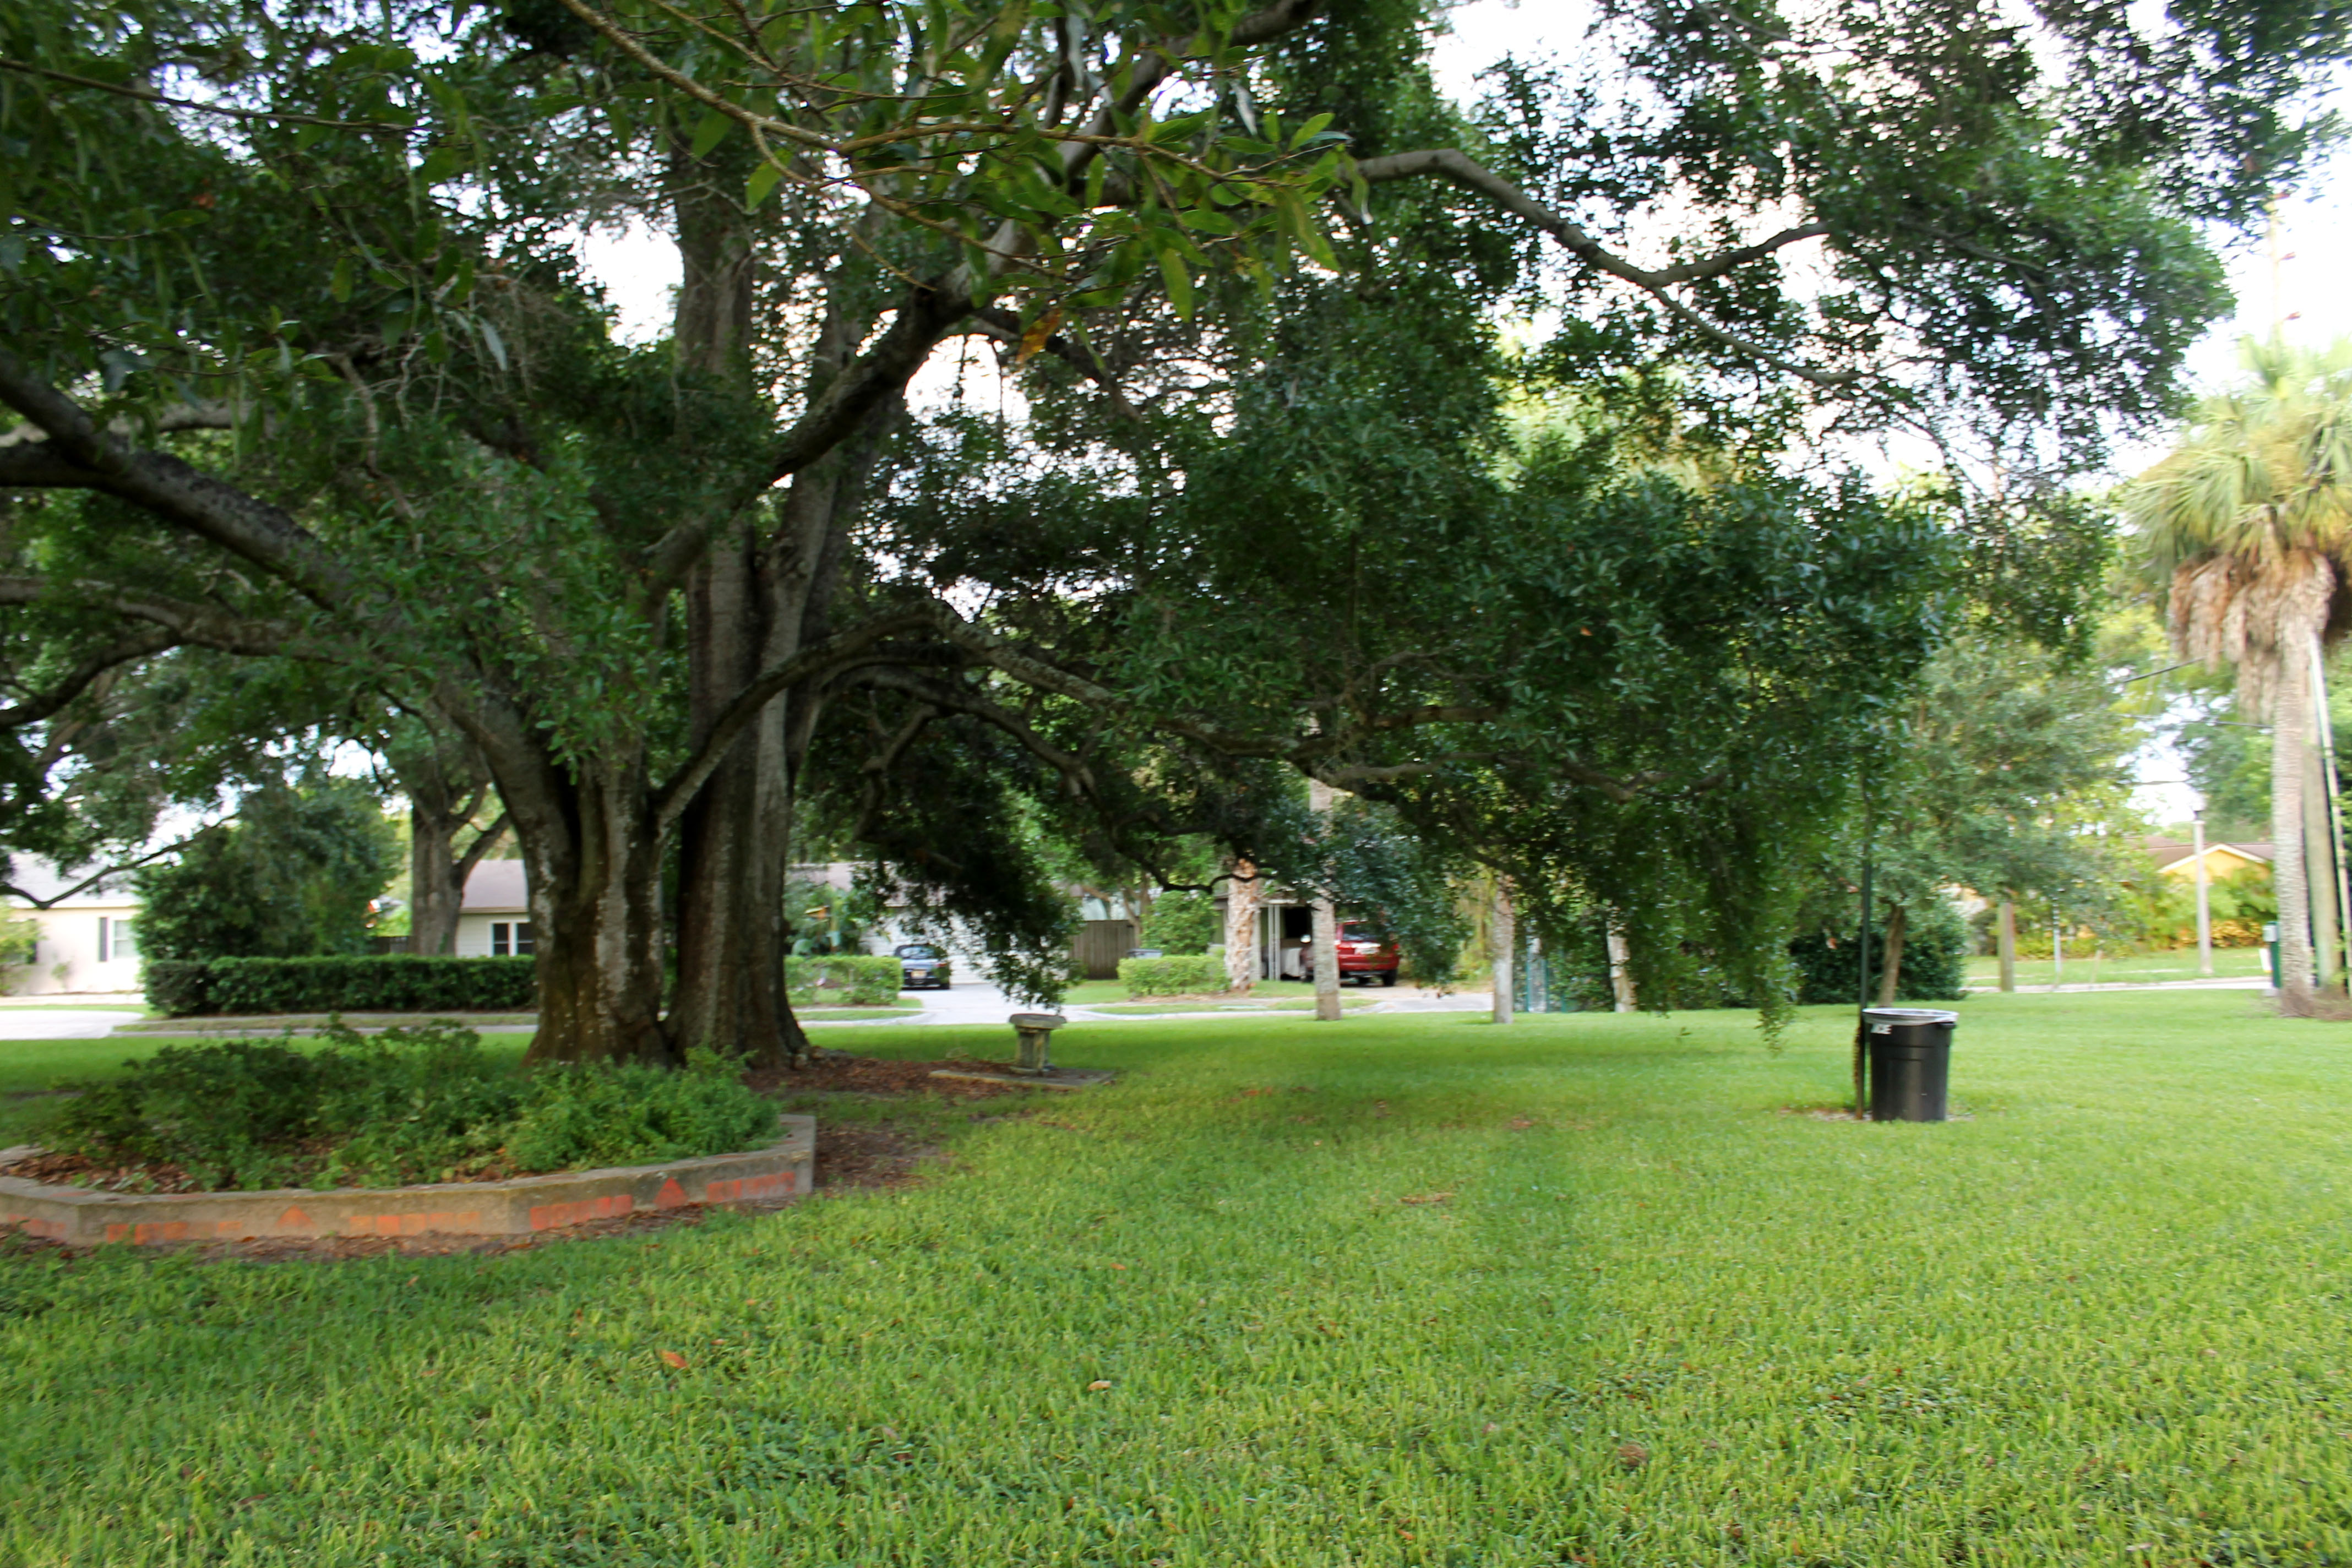 Freshly-cut grassy area in Rex Beach Park with a large oak, flower planter, and trash can